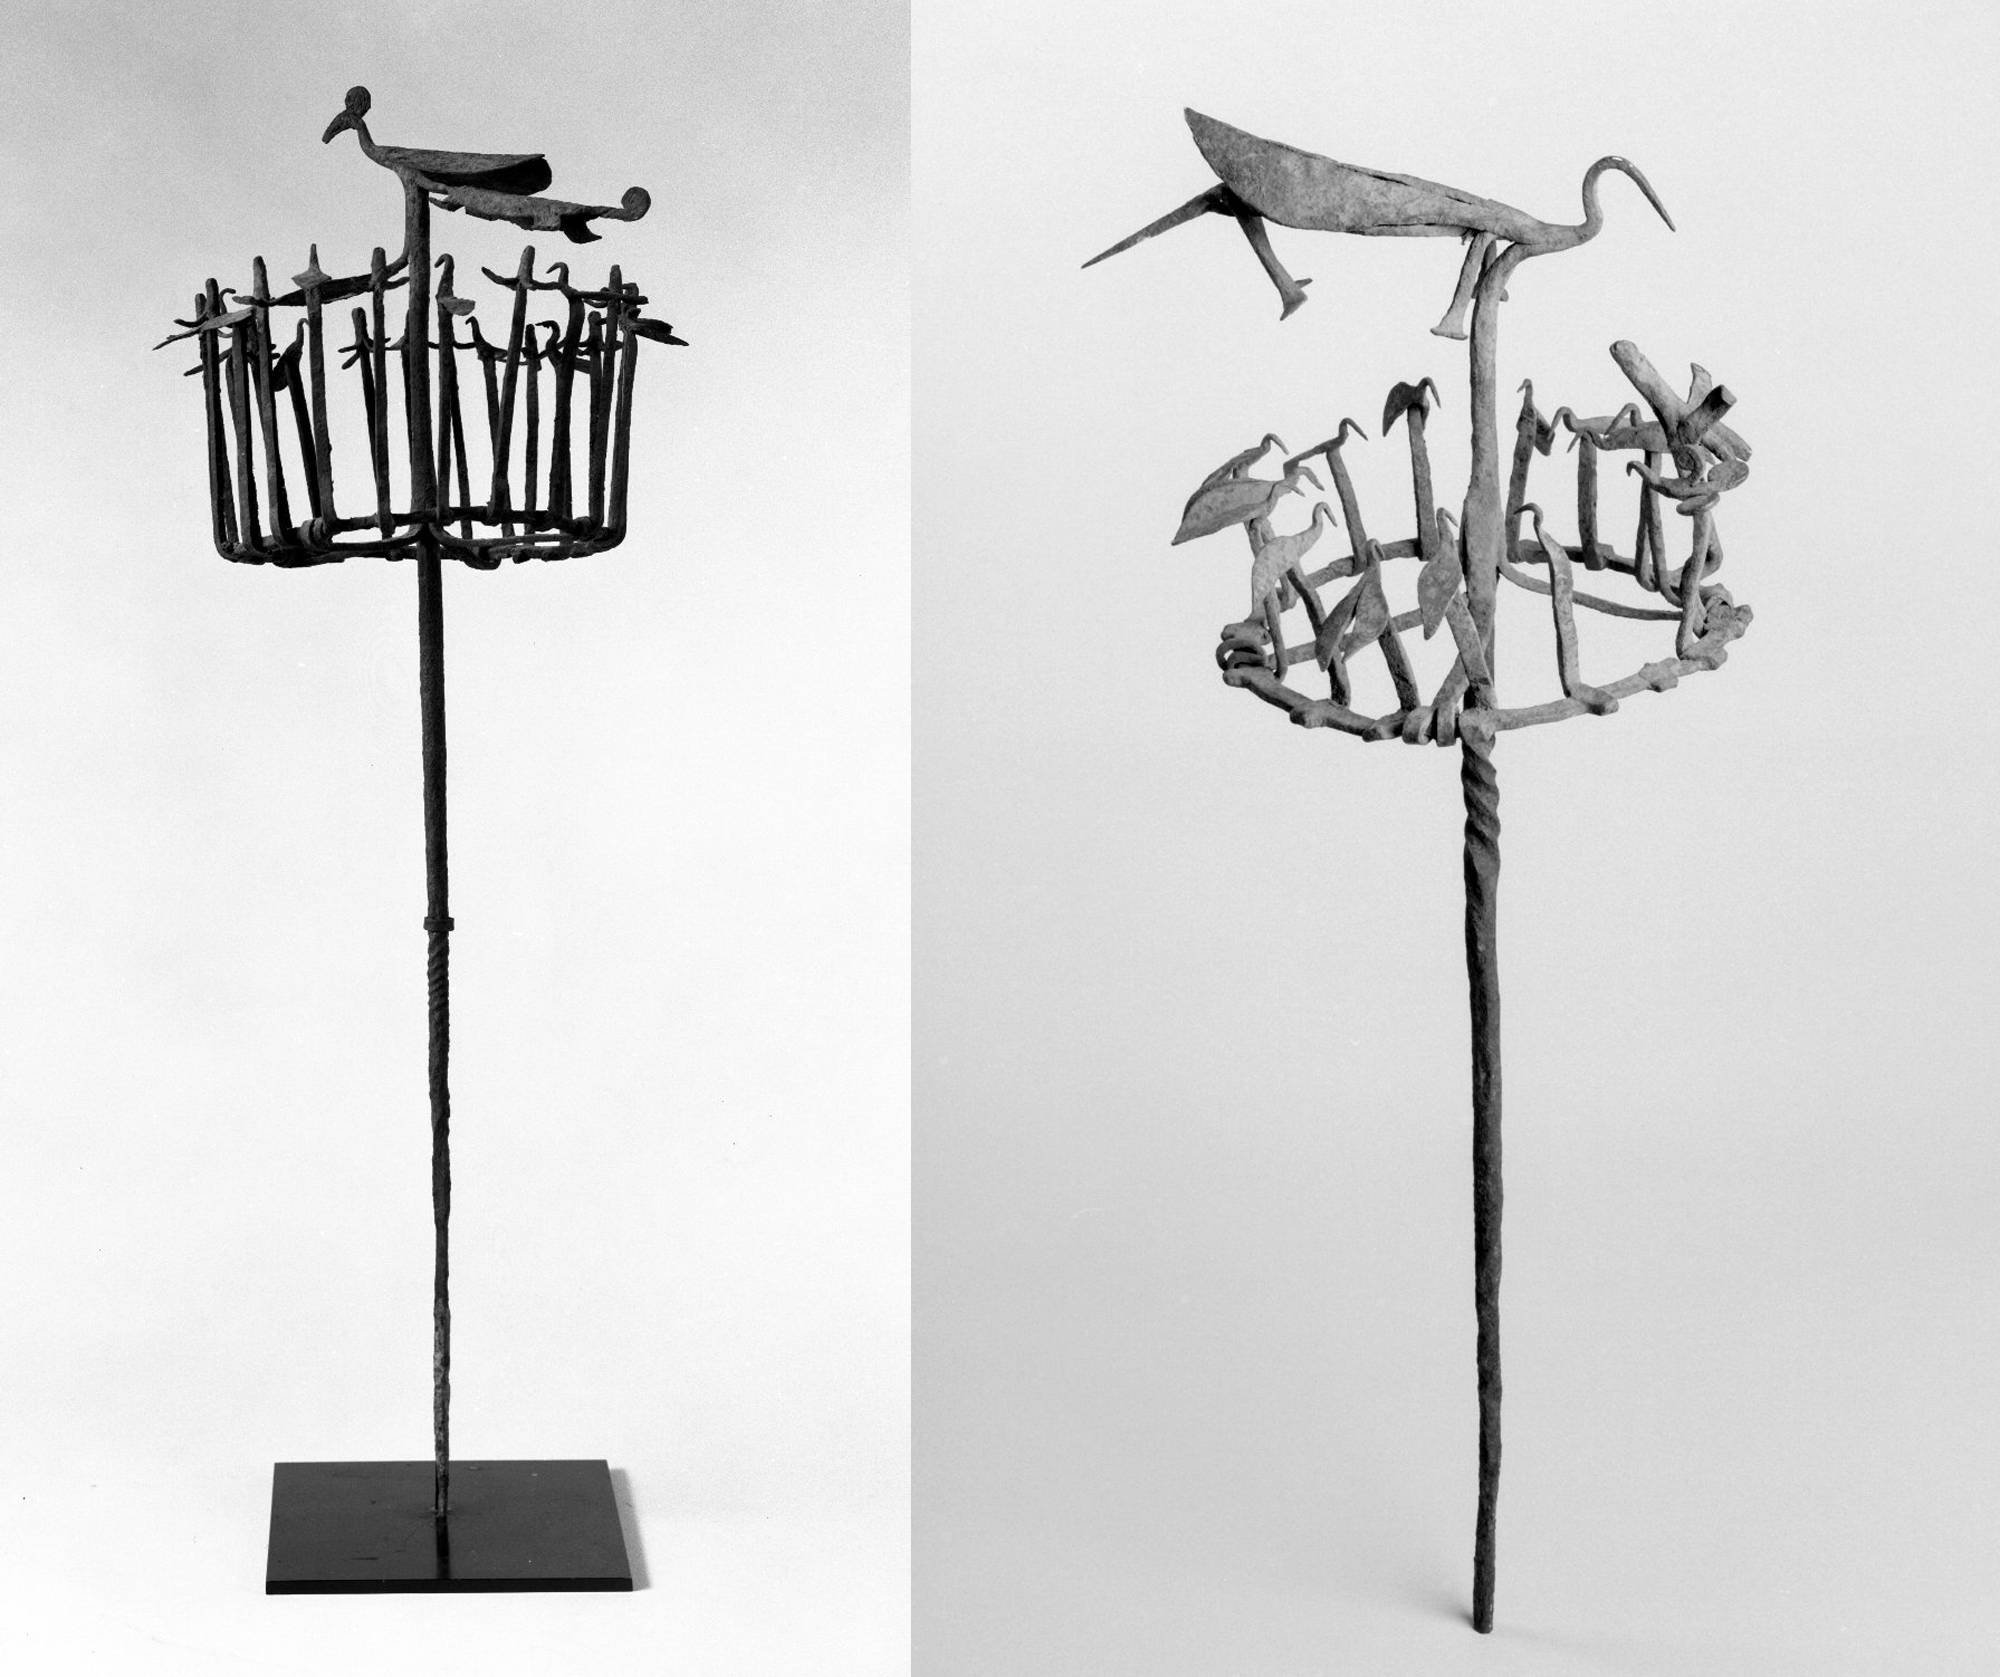 """Two examples for Ọ̀sanyìn staffs. The one on the right from the 19th century is called """"Ọ̀sanyìn or Erinlẹ̀"""" staff by the museum.Images by  Brooklyn Museum   CC BY 3.0"""